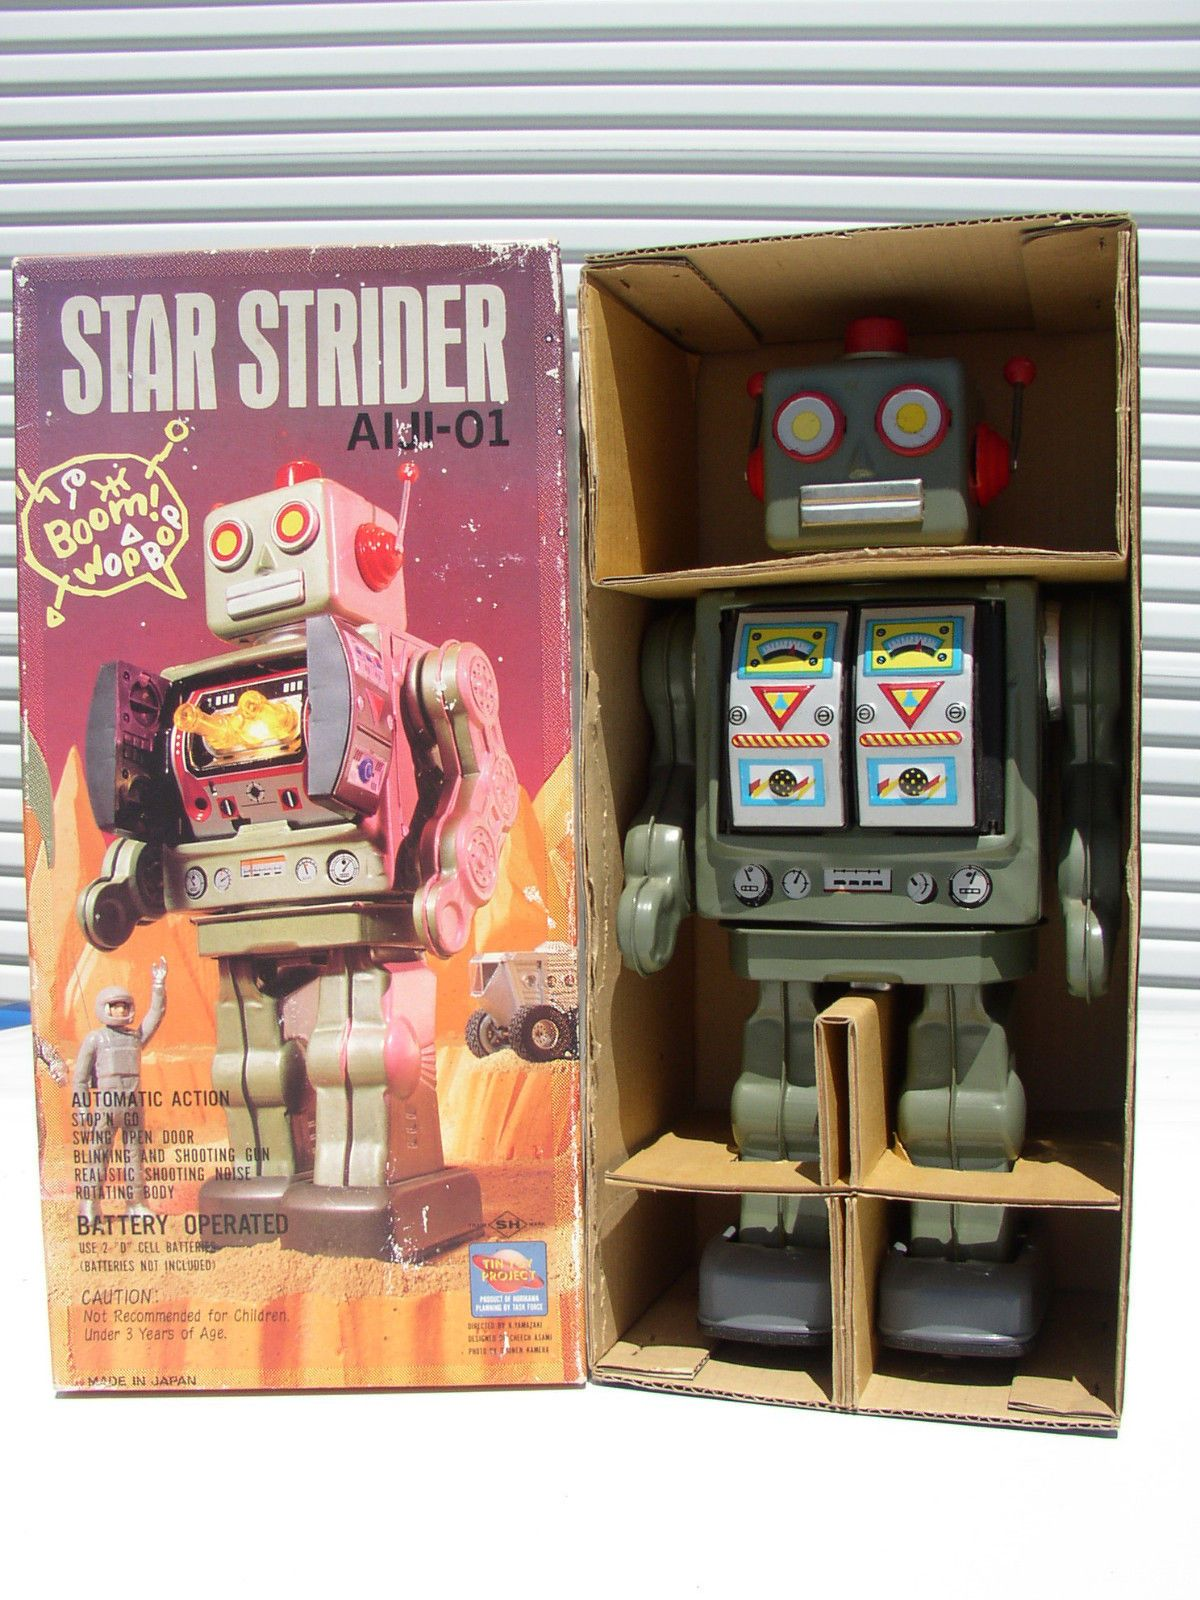 """SH HORIKAWA JAPAN STAR STRIDER ROBOT AIJI-01 GREEN BATT. OP. TIN TOY MIB`80 RARE RARE Early Reproduction Model Special Full Picture Box! For Your consideration is one Very Rare,  HORIKAWA Tin Toy Robot Model """"STAR STRIDER"""" AIJI-01 which is a rare original Japan Made replica model which was produced in Japan back in the late 1970's to early 1980's from the actual Original Japanese molds used back in the late 1950's to early 1960s! The robot was produced by: SH Horikawa of Japan and…"""